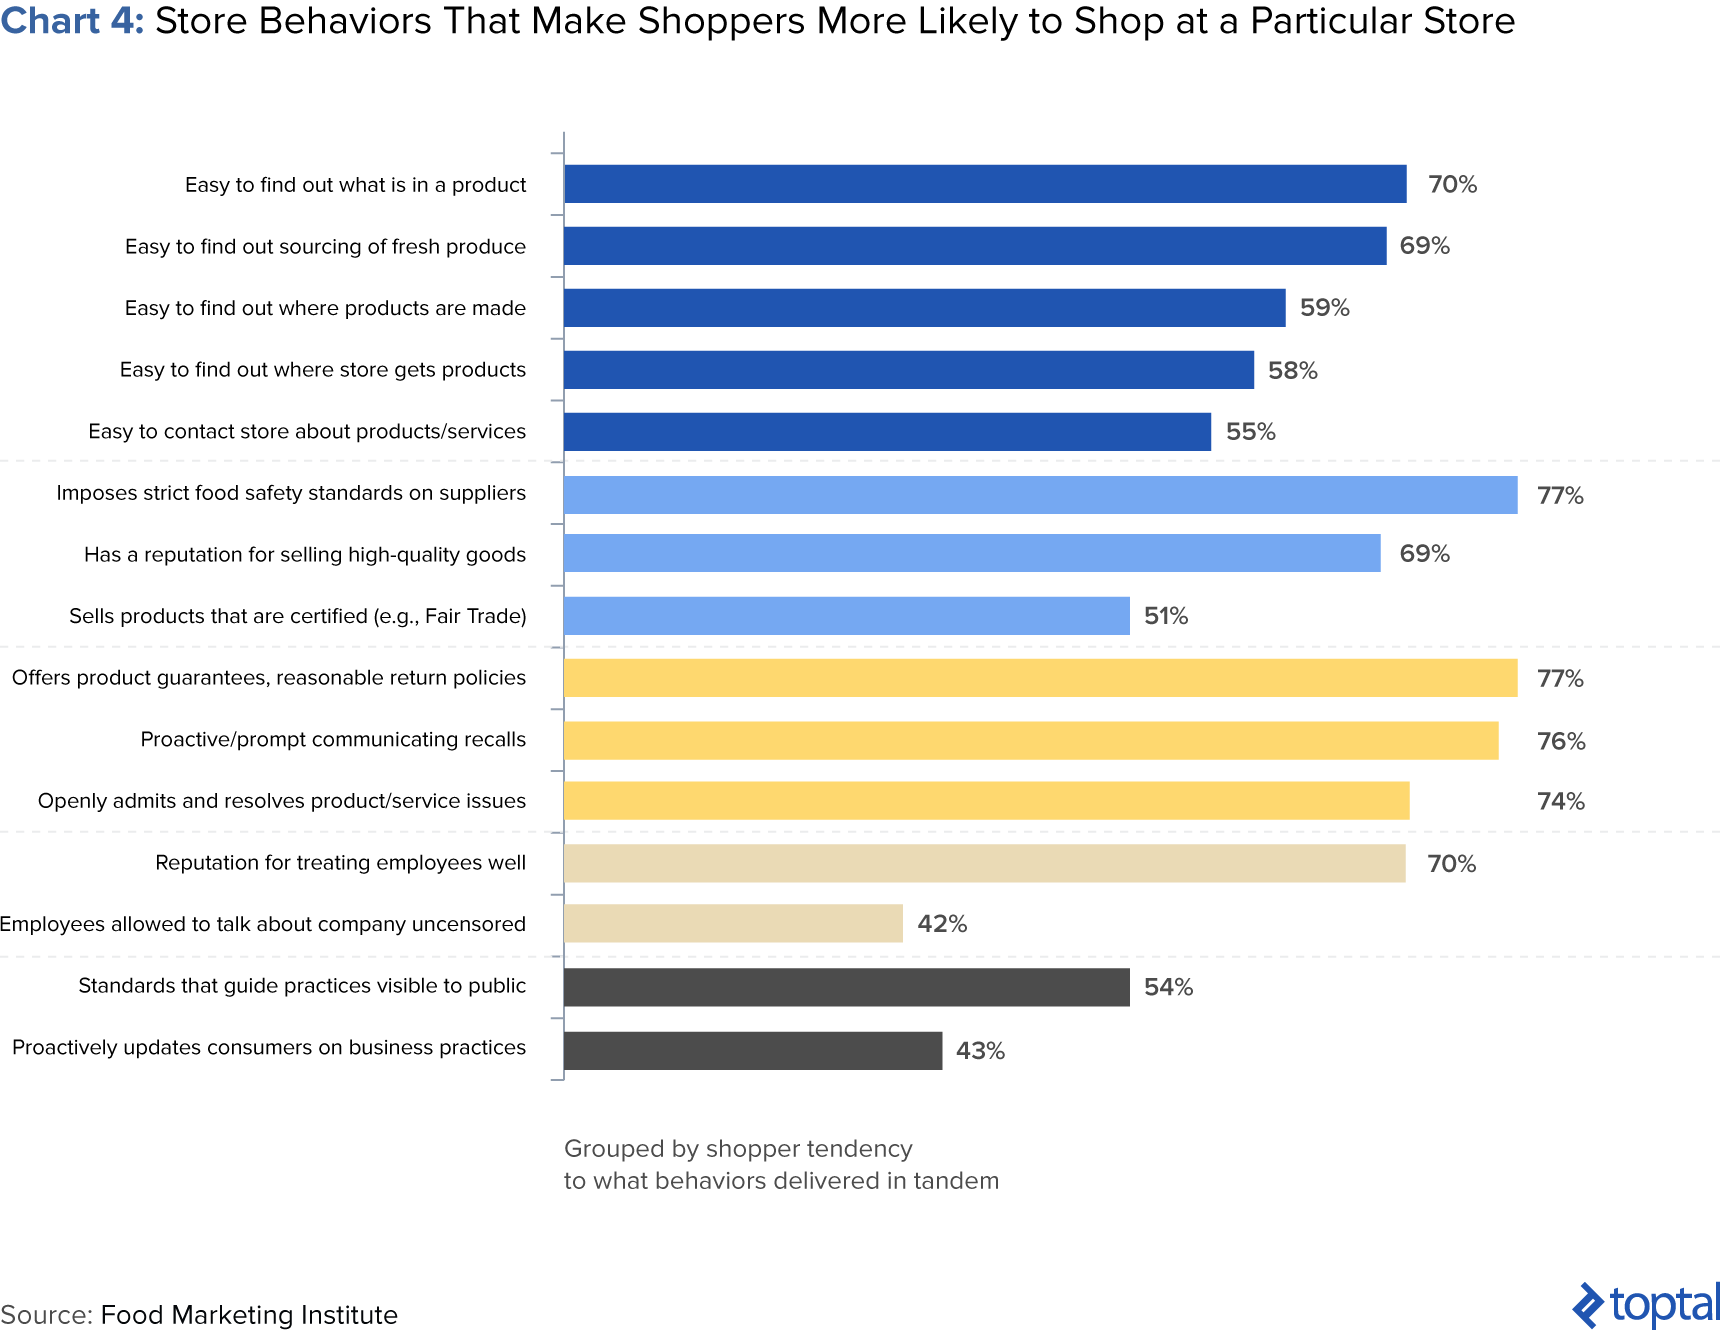 Chart 4: Store Behaviors That Make Shopper More Likely to Shop at a Particular Store